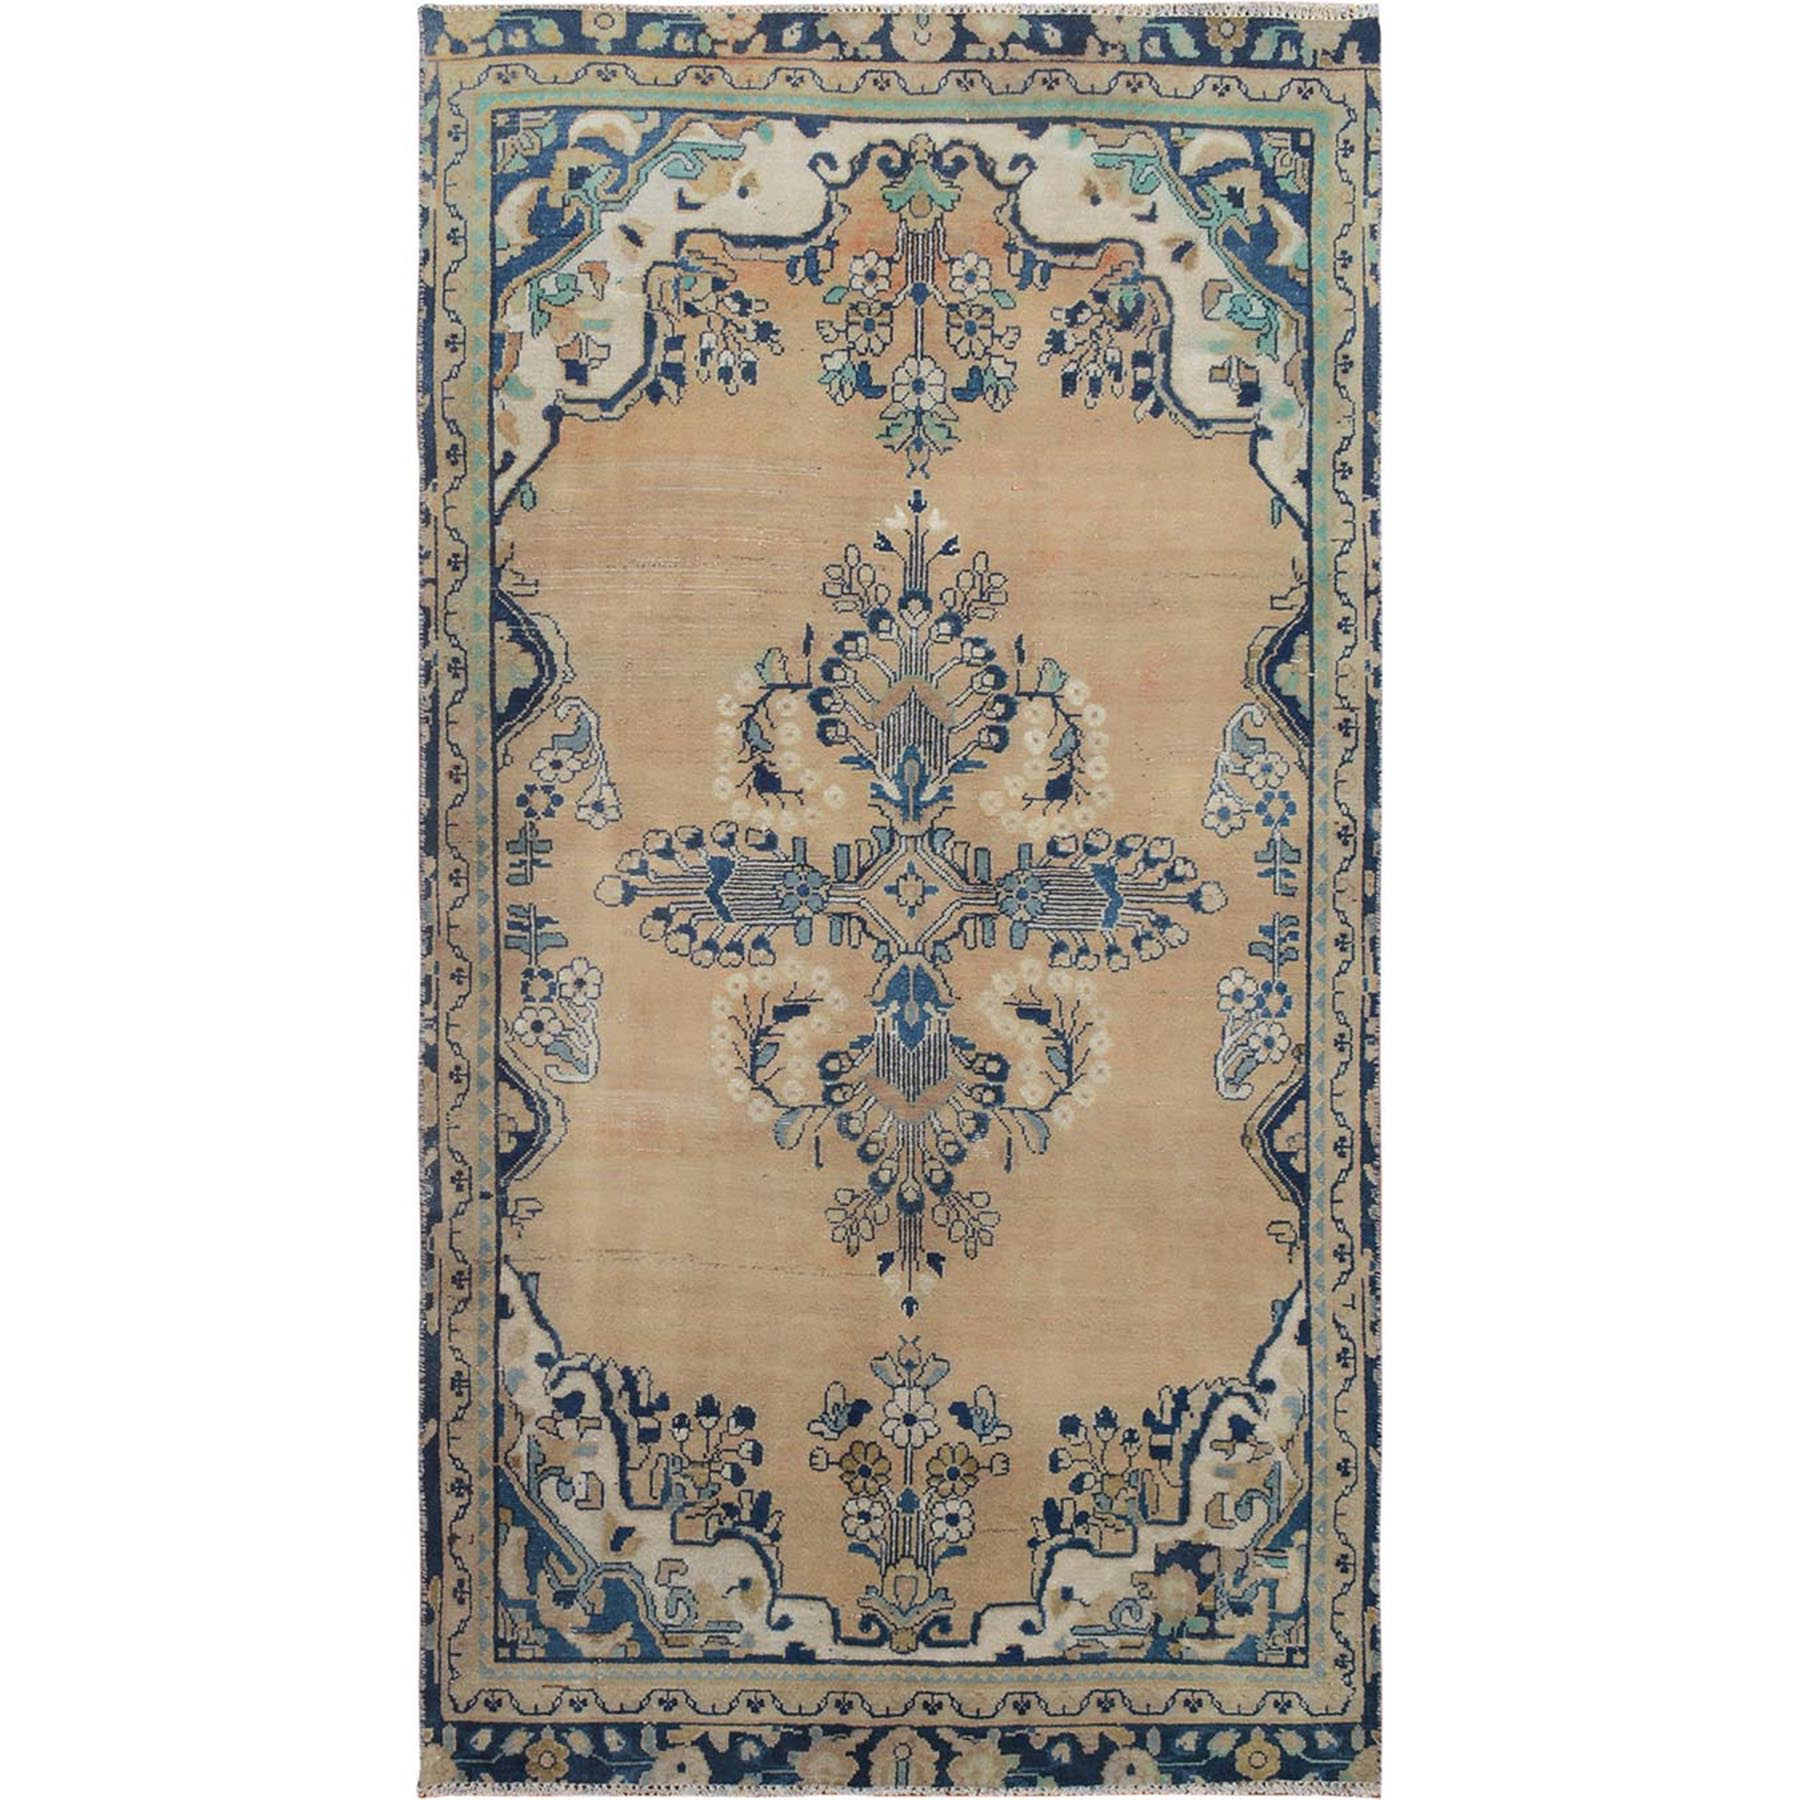 "4'x6'10"" Natural Colors Vintage and Worn Down Persian Lilahan Hand Knotted Pure Wool Oriental Rug"